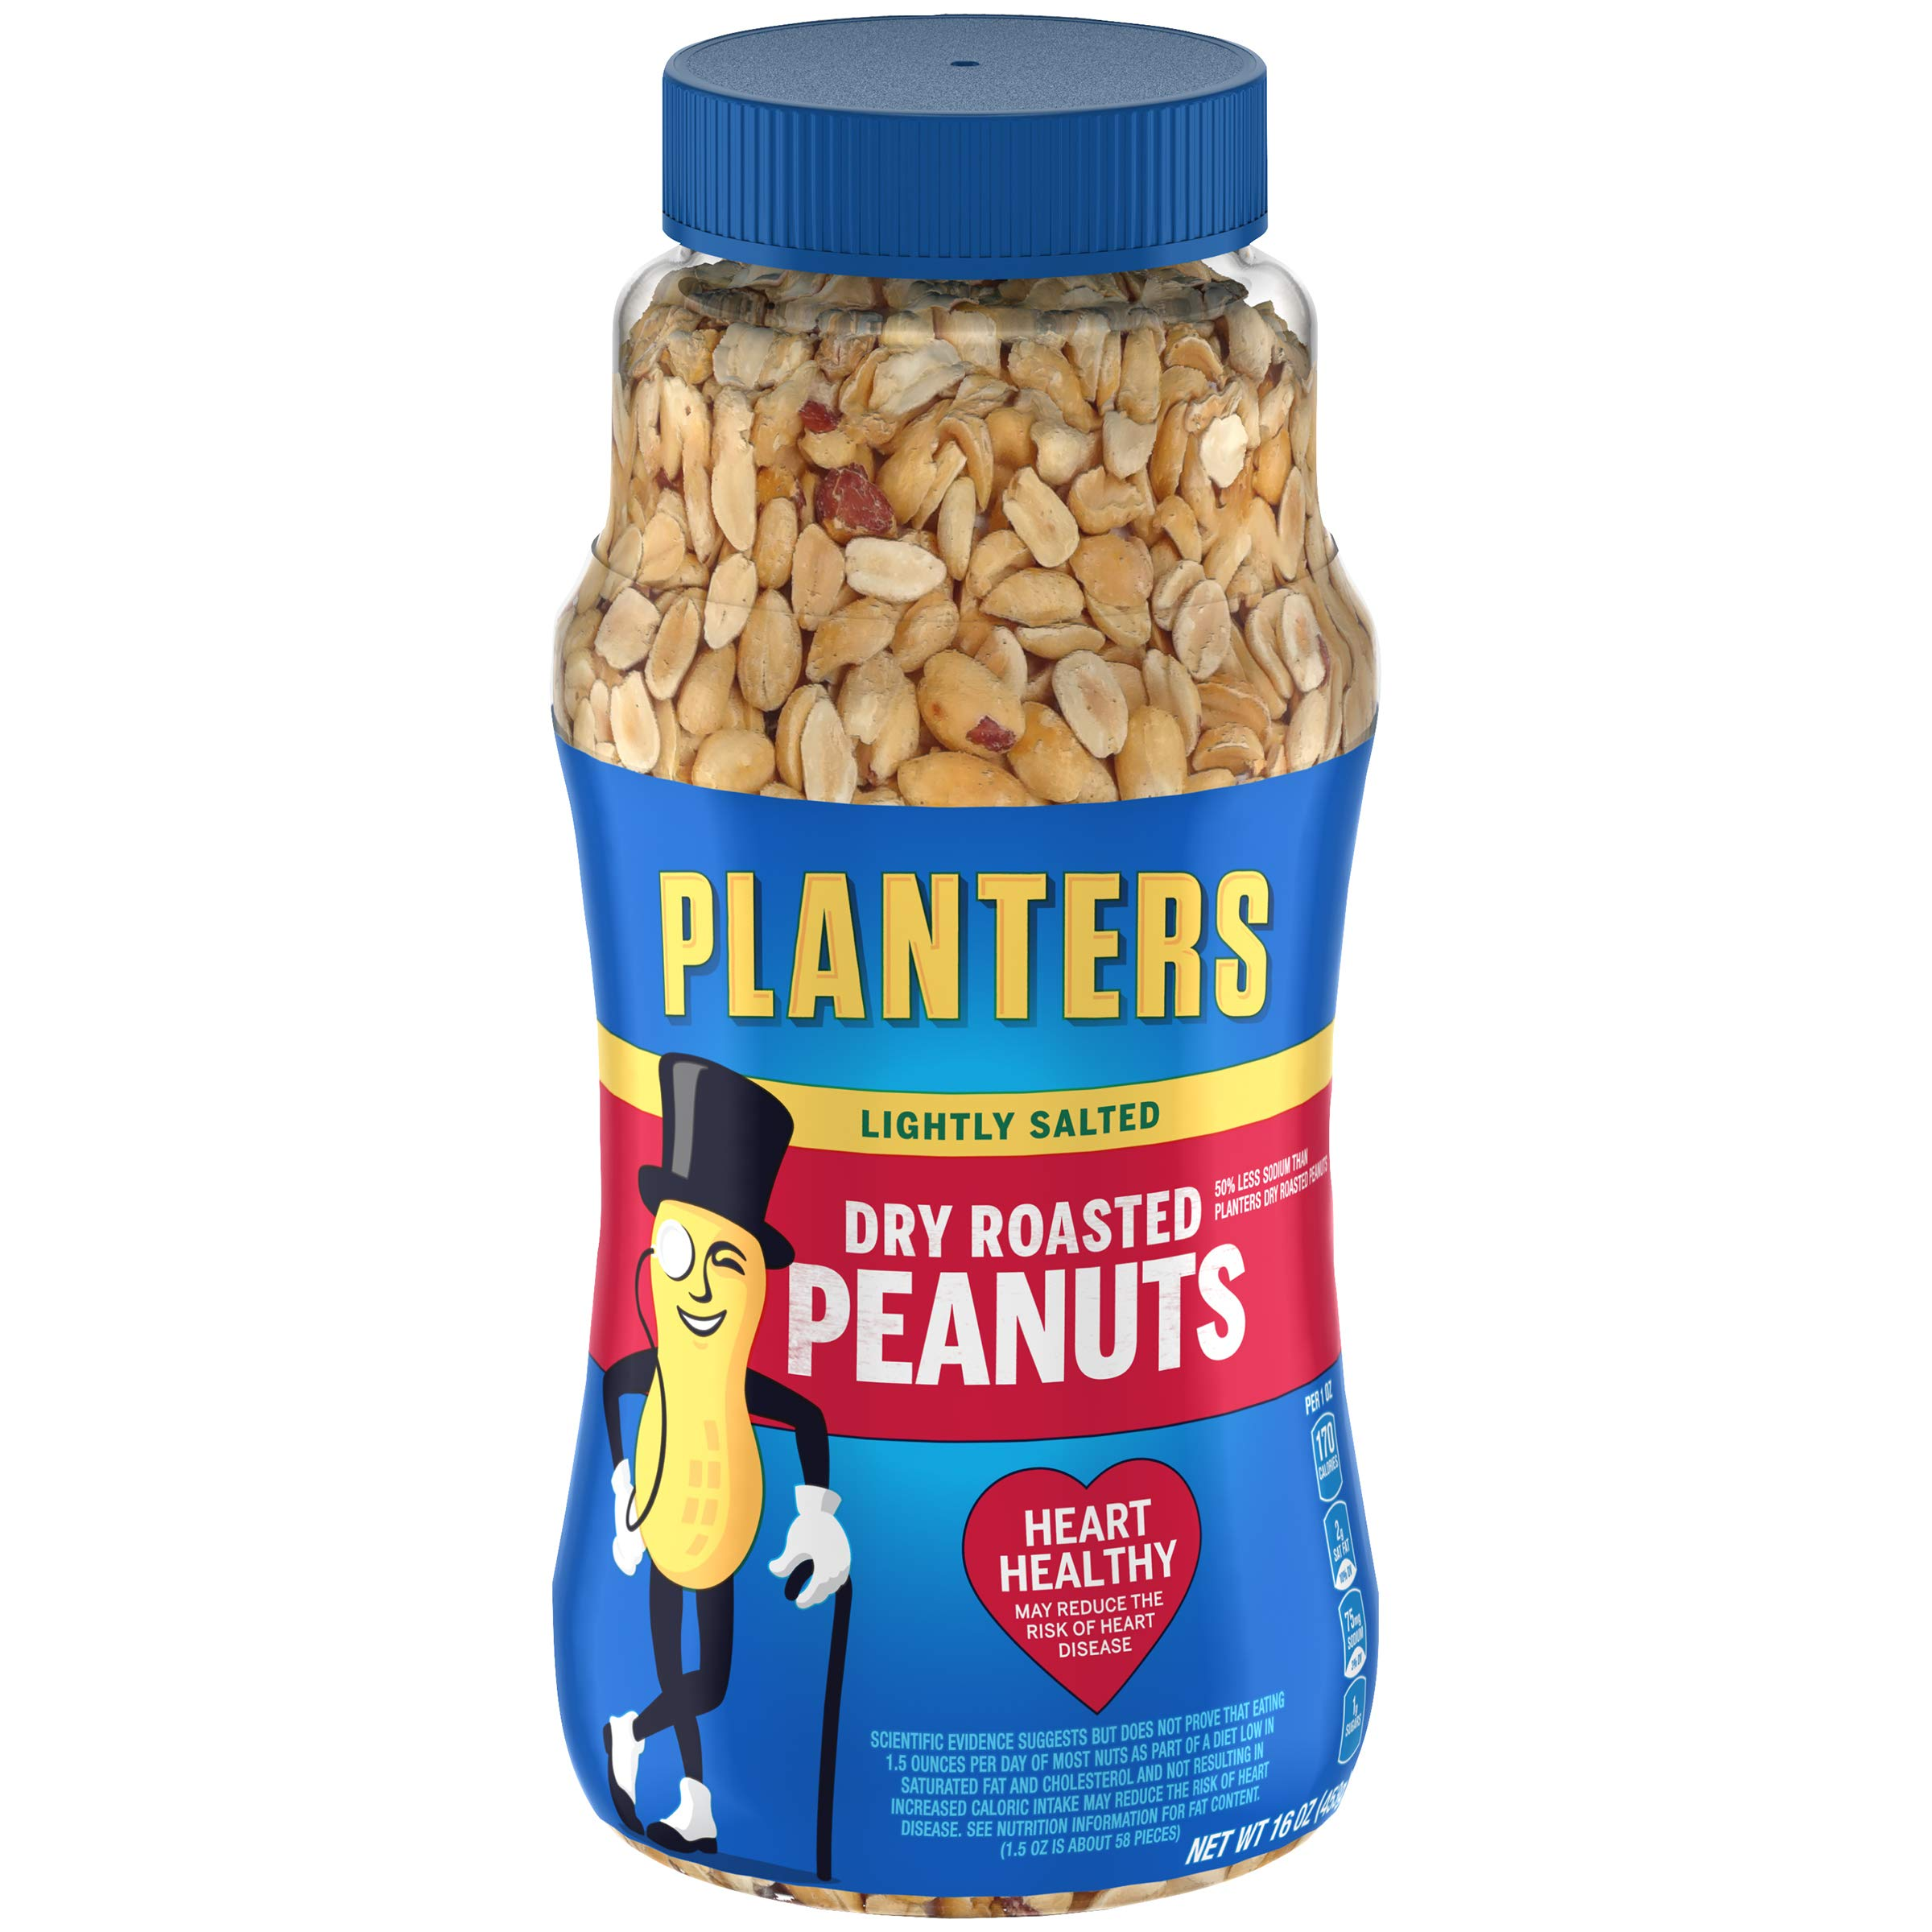 PLANTERS Lightly Salted Dry Roasted Peanuts, 16 oz. Resealable Jars (Pack of 6) - Peanut Snack - Great Movie Snack, Active Lifestyle Snack and Party Size Snack - Protein Snack - Kosher Peanuts